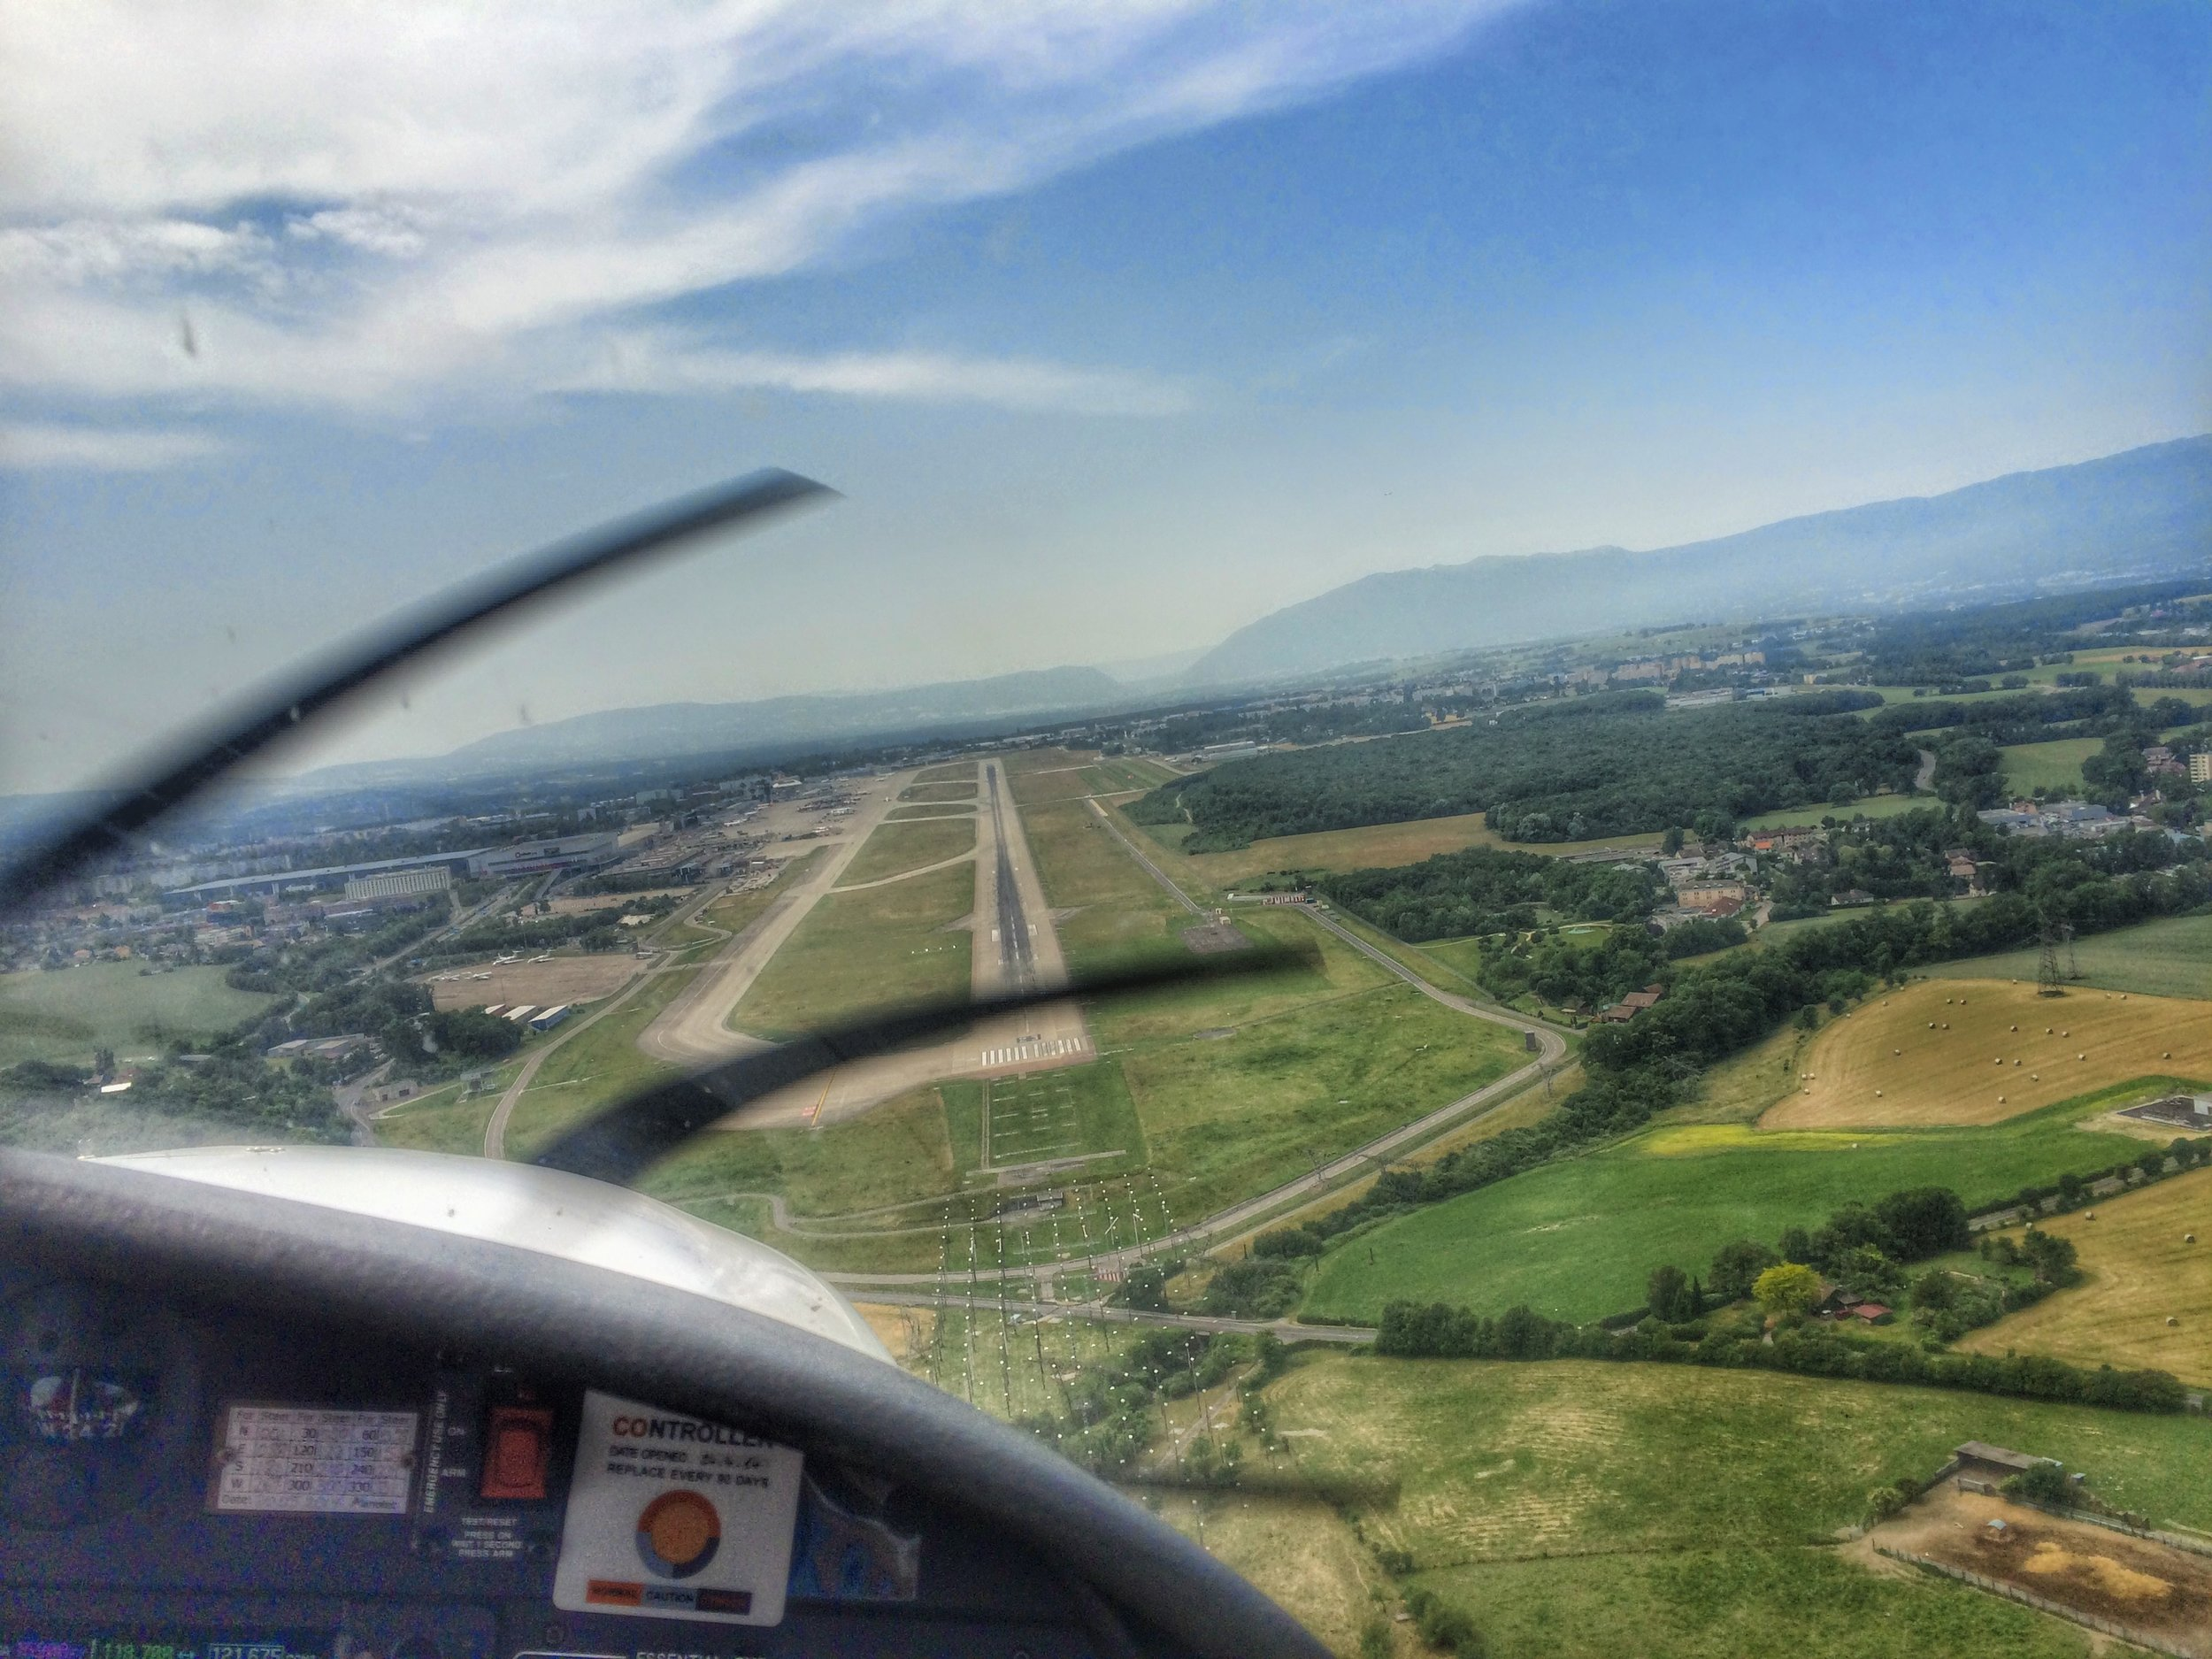 Final Approach for 23 concrete at Geneva